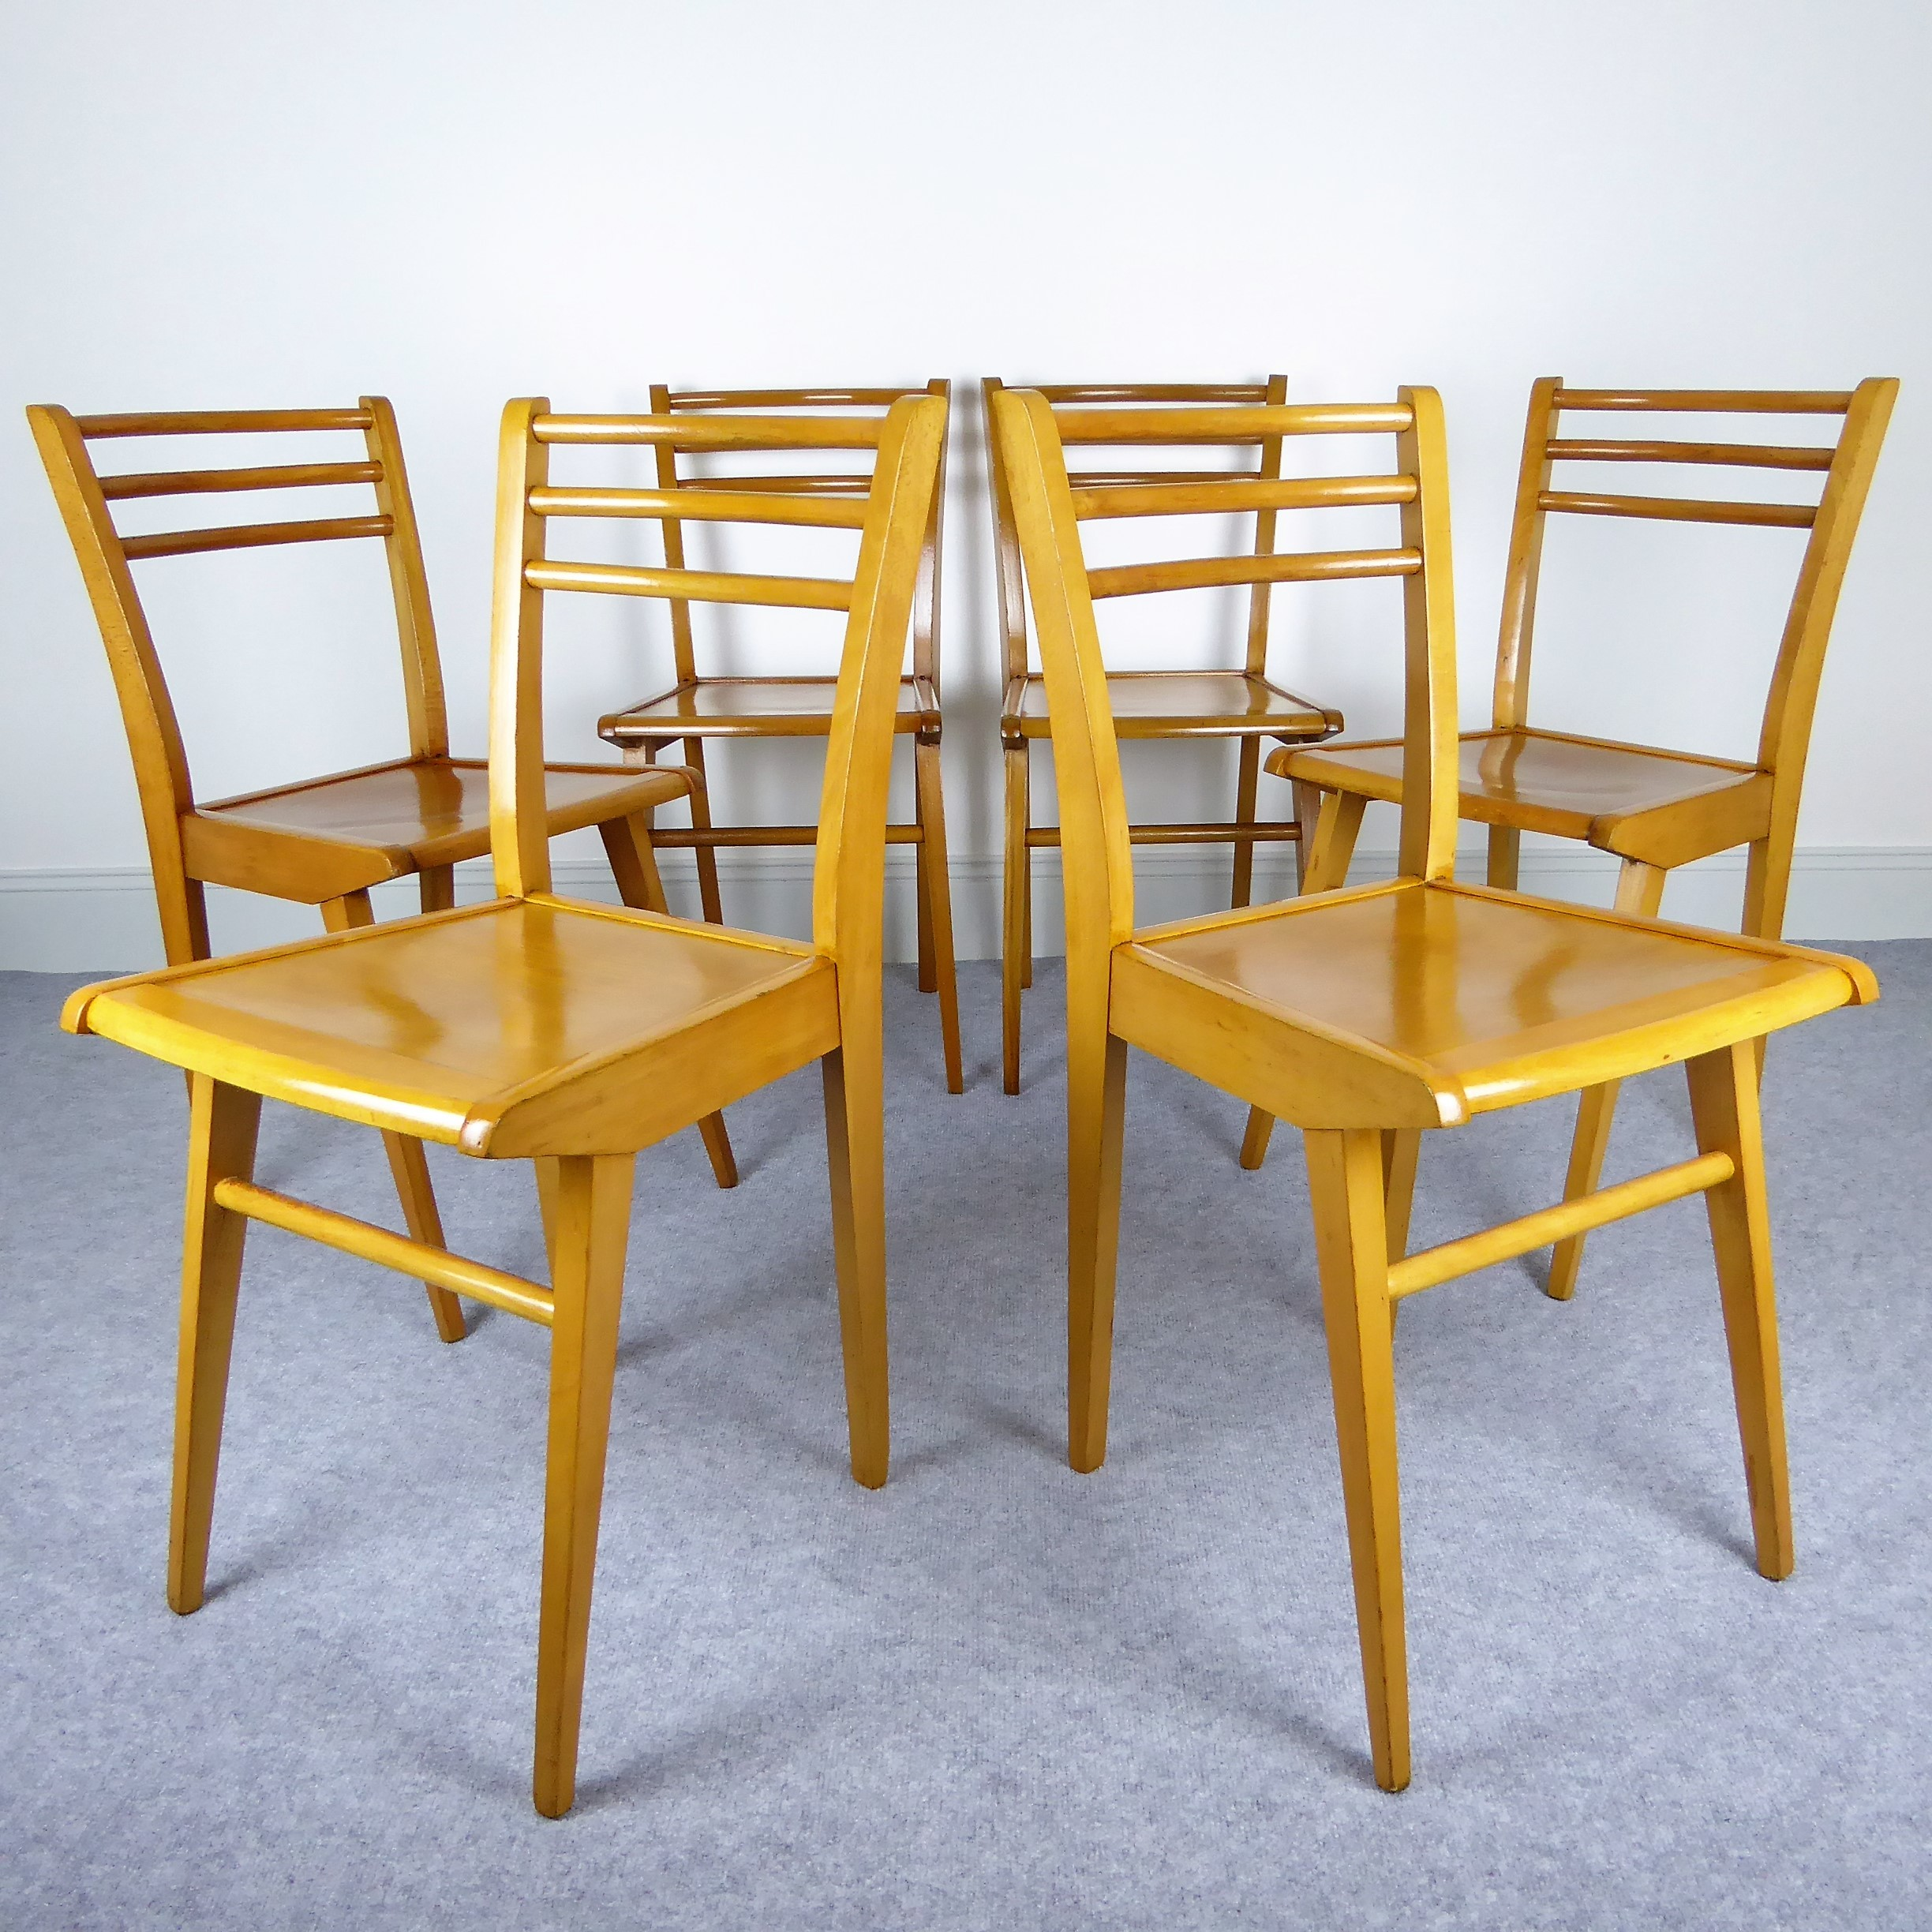 Set of 6 beechwood chairs with compass legs by luterma 1950s